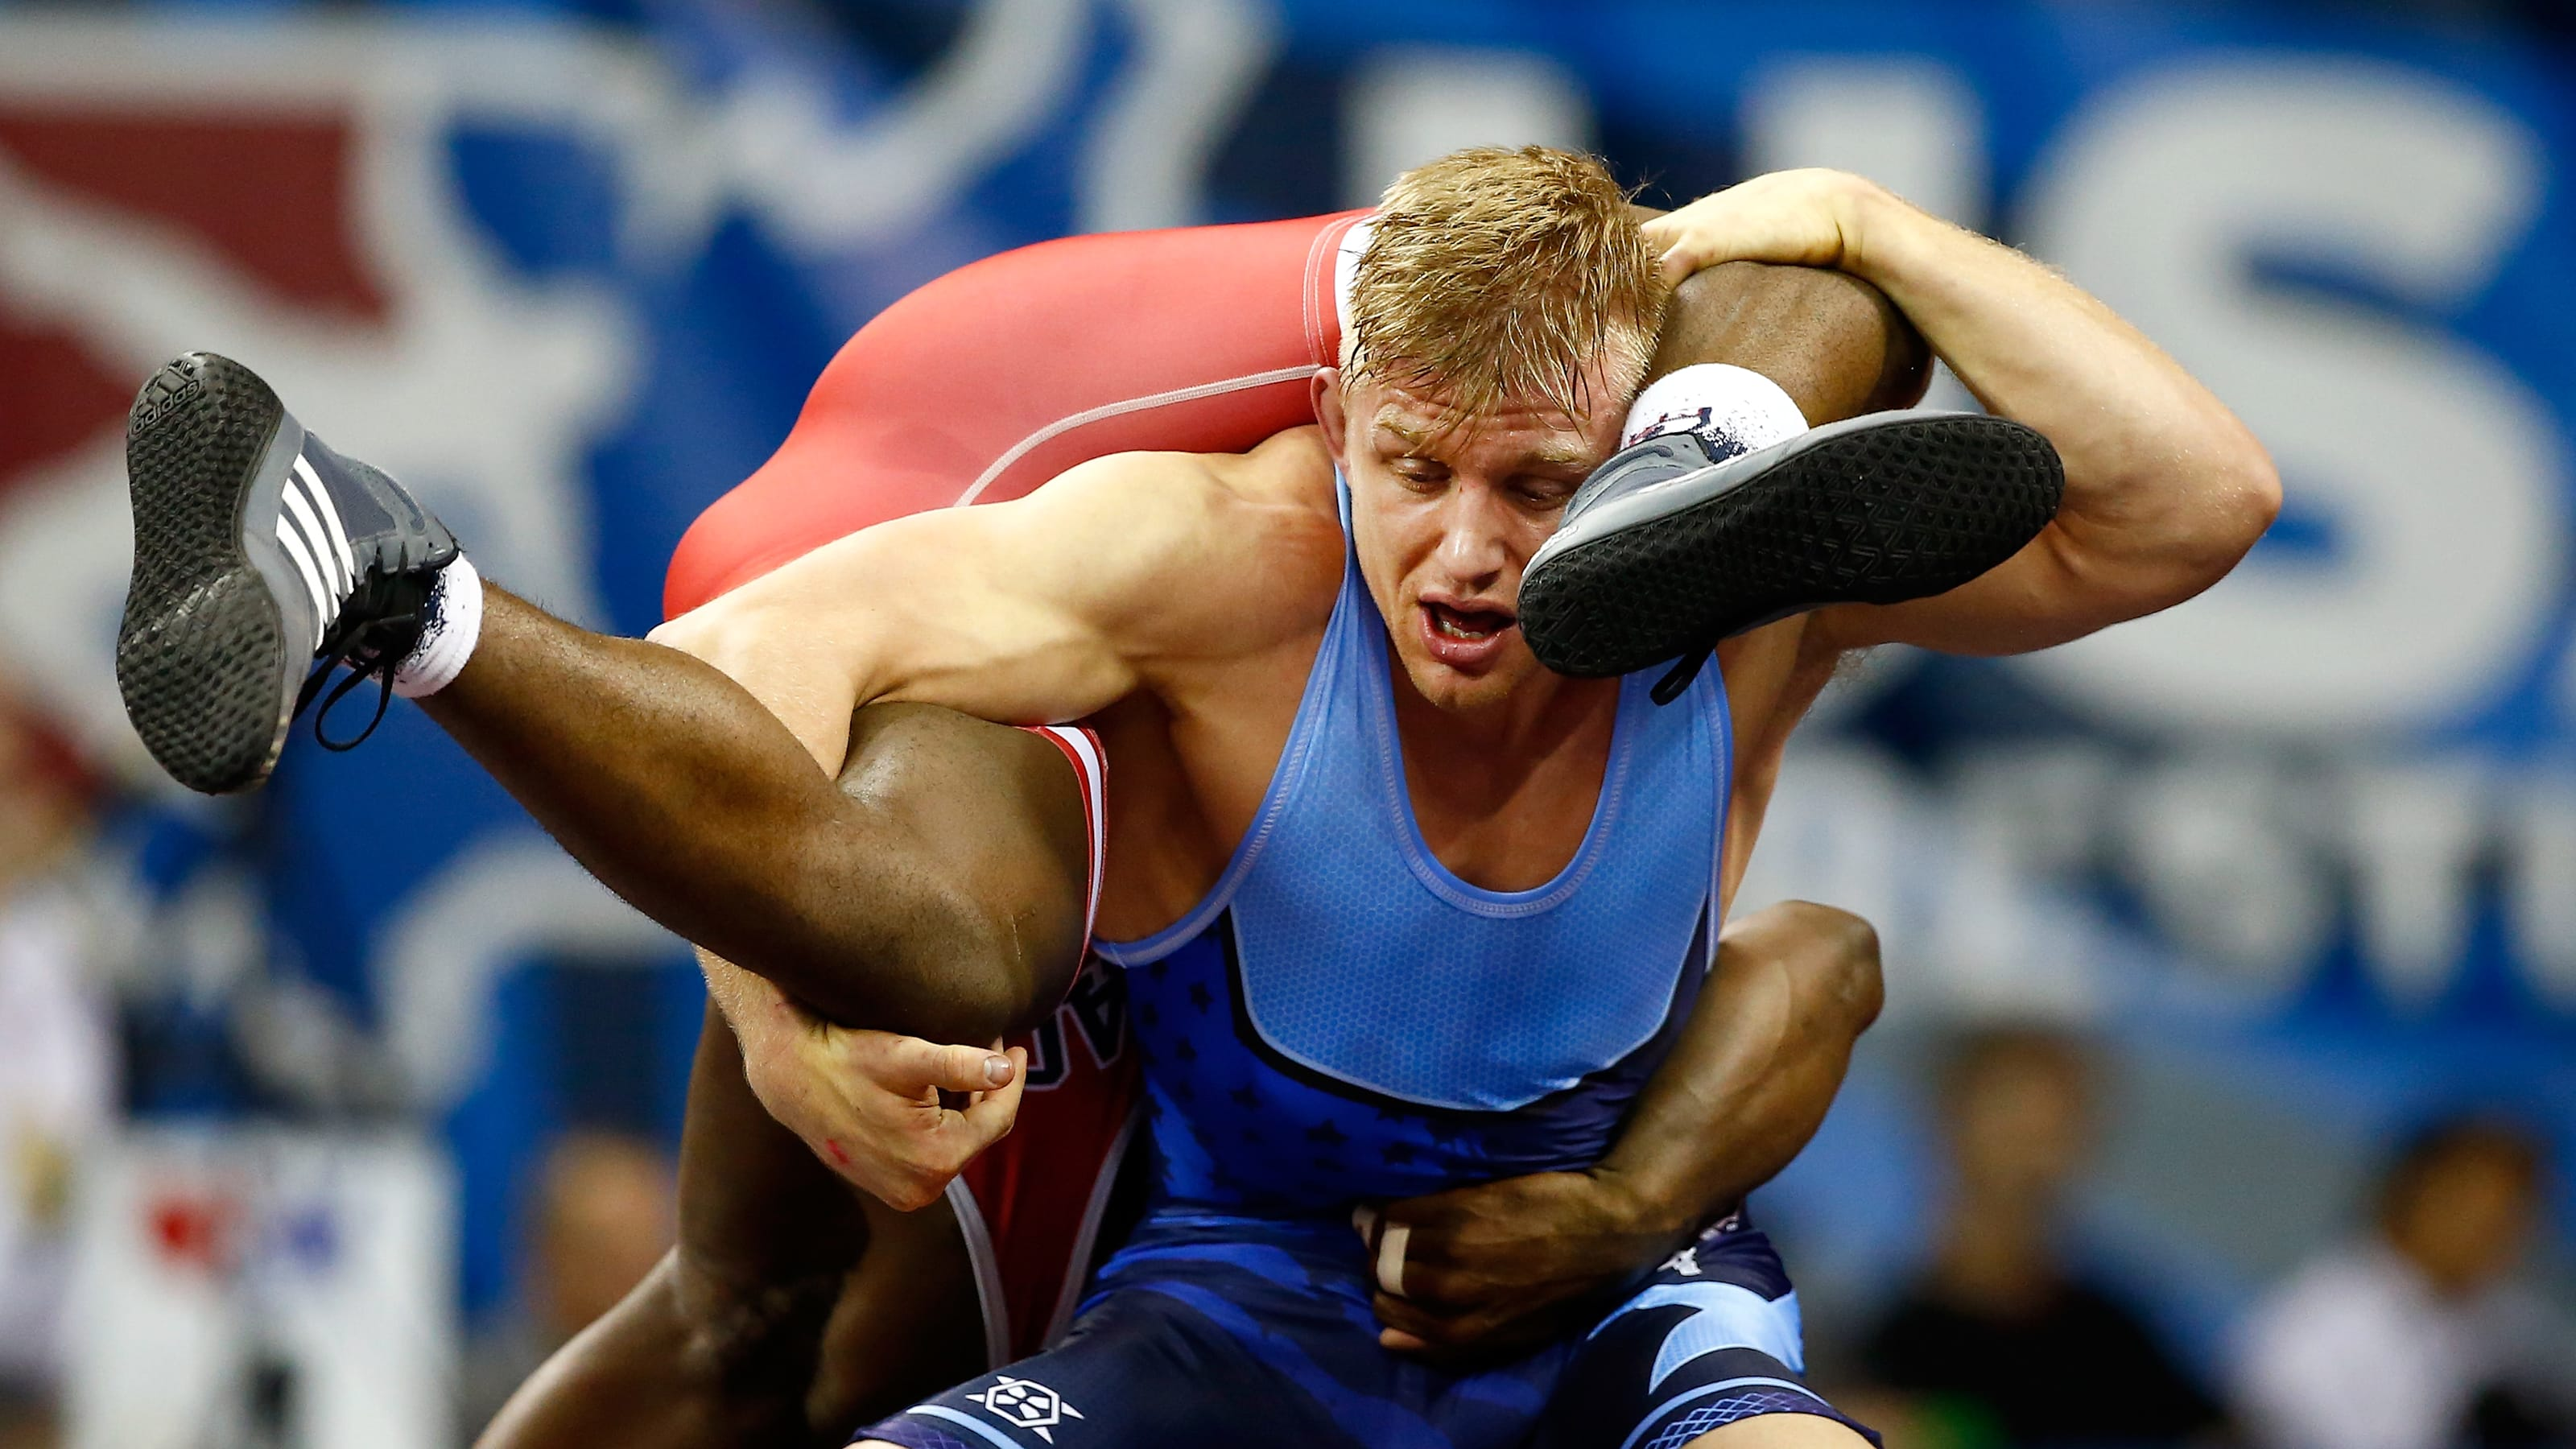 Kyle Dake Edges Frank Chamizo In Wrestling Thriller